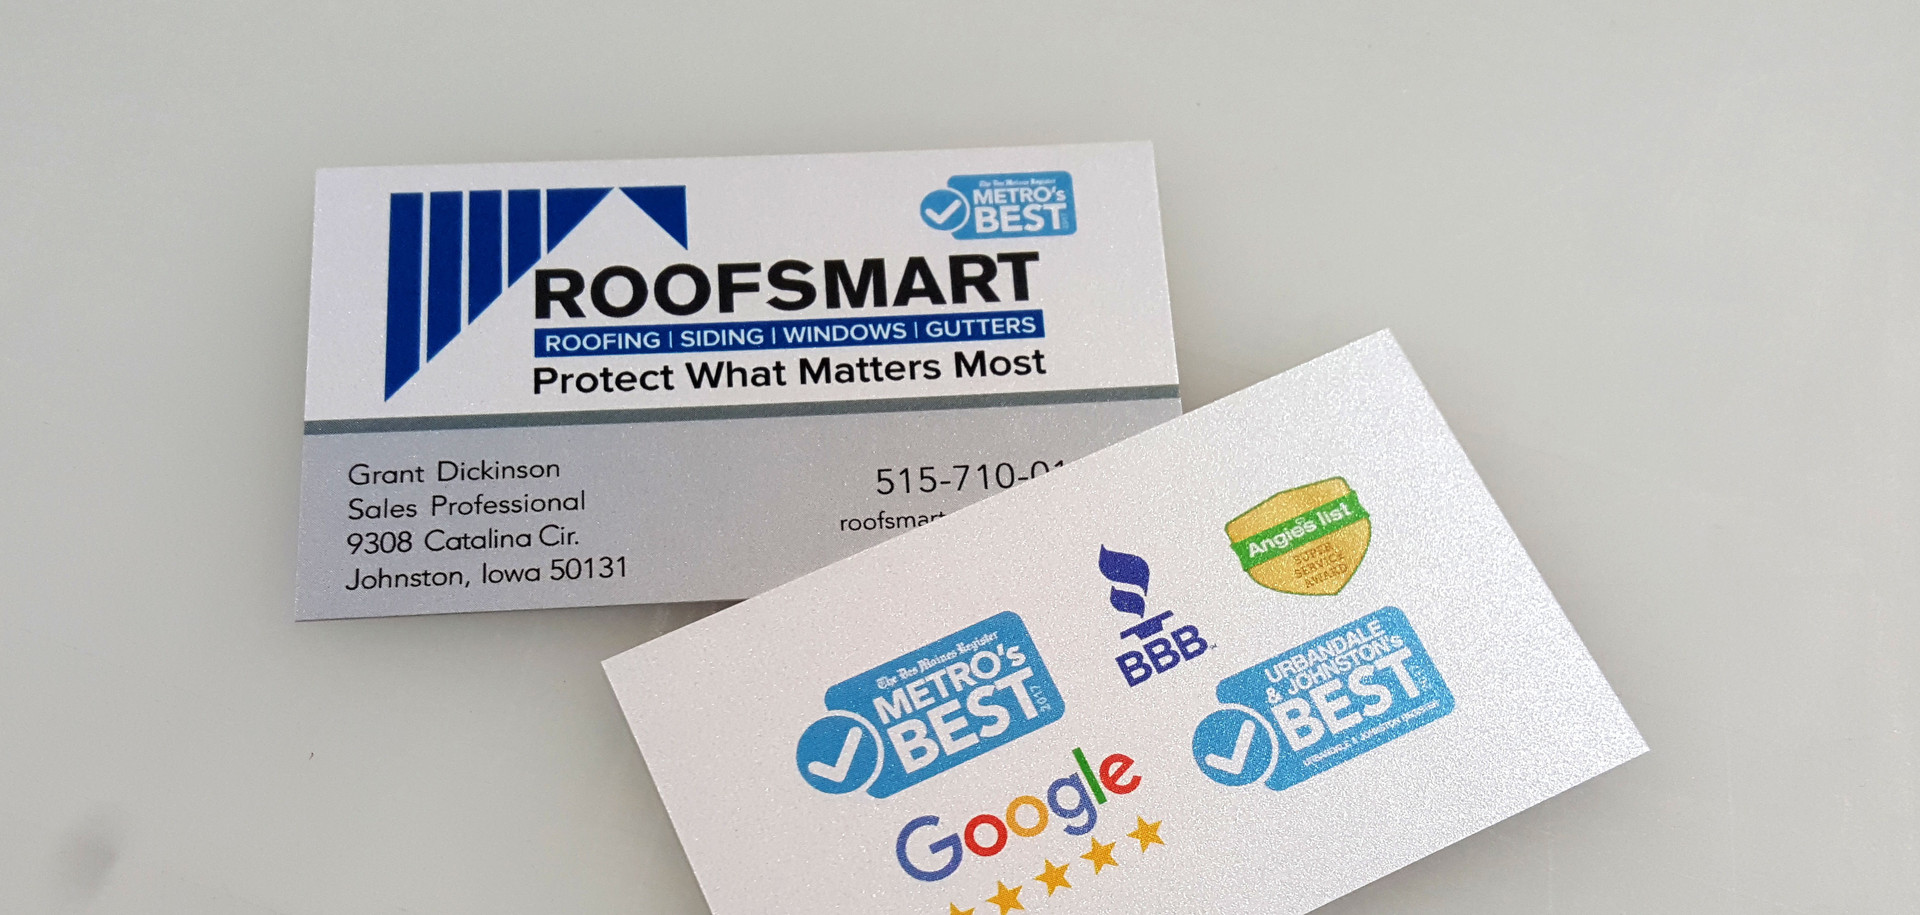 RoofSmart Business Card Design & Print